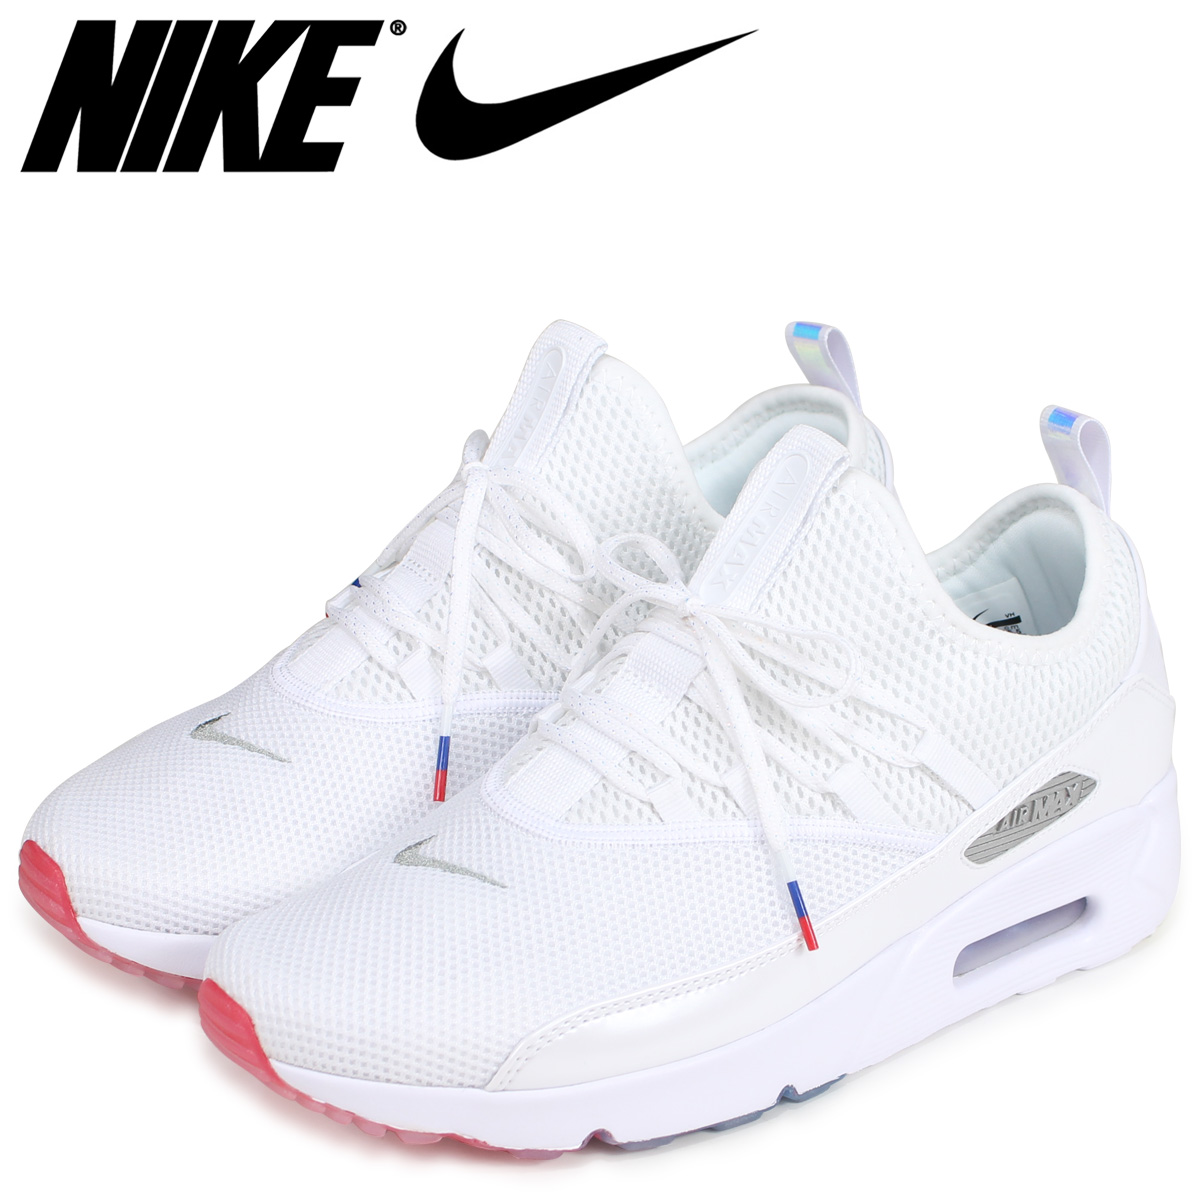 size 40 49a84 b6c0e NIKE Kie Ney AMAX 90 sneakers men AIR MAX 90 EZ AQ7980-100 white  load  planned Shinnyu load in reservation product 7 19 containing